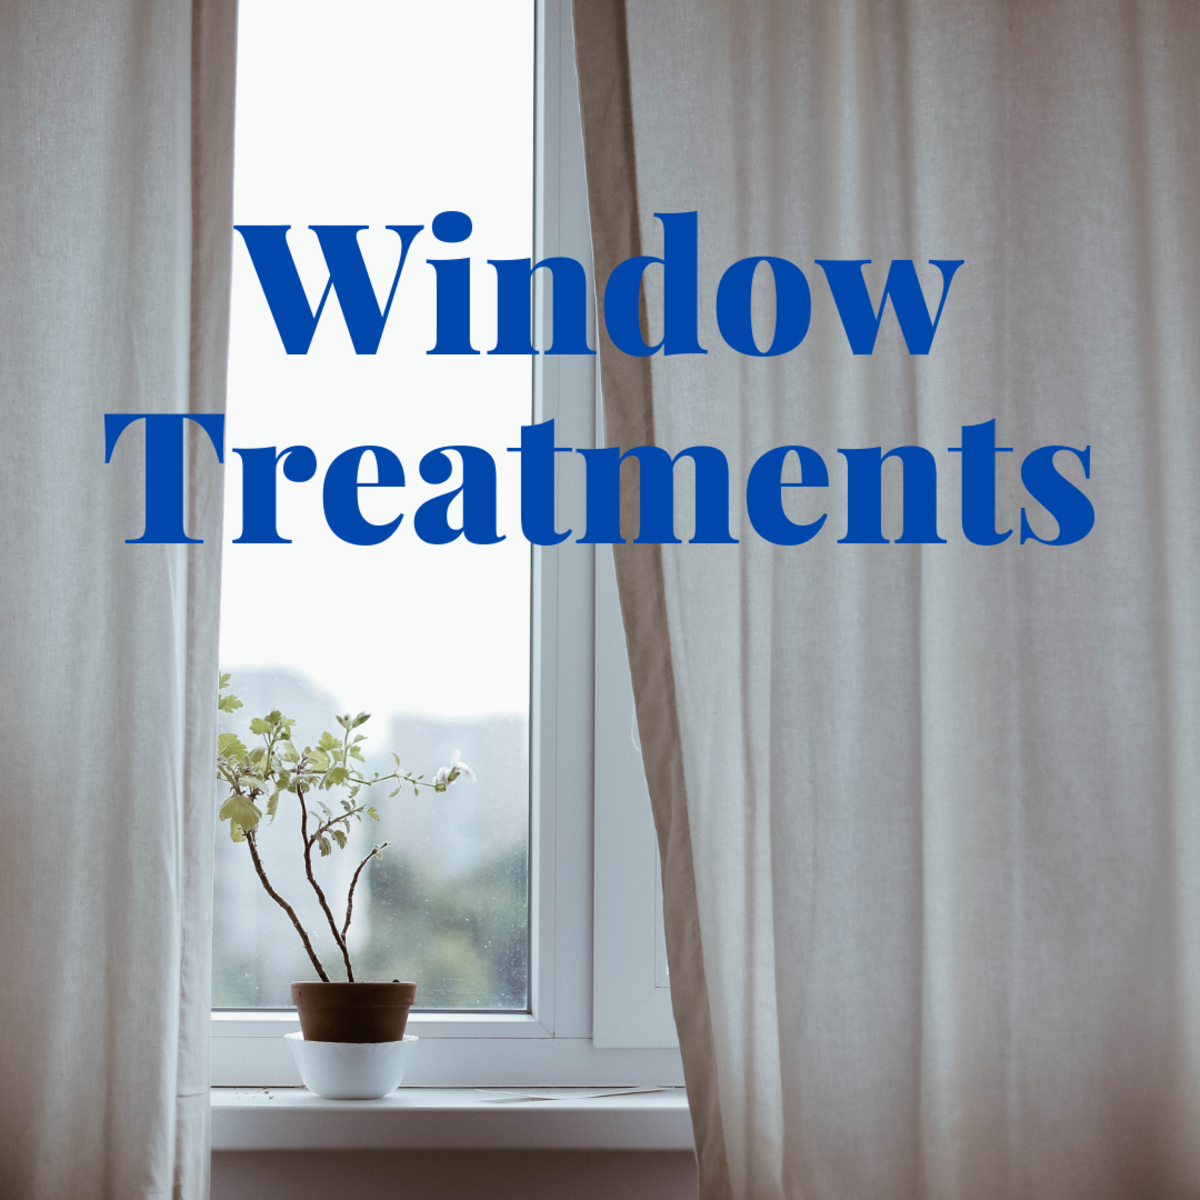 Basic Window Treatments Explained